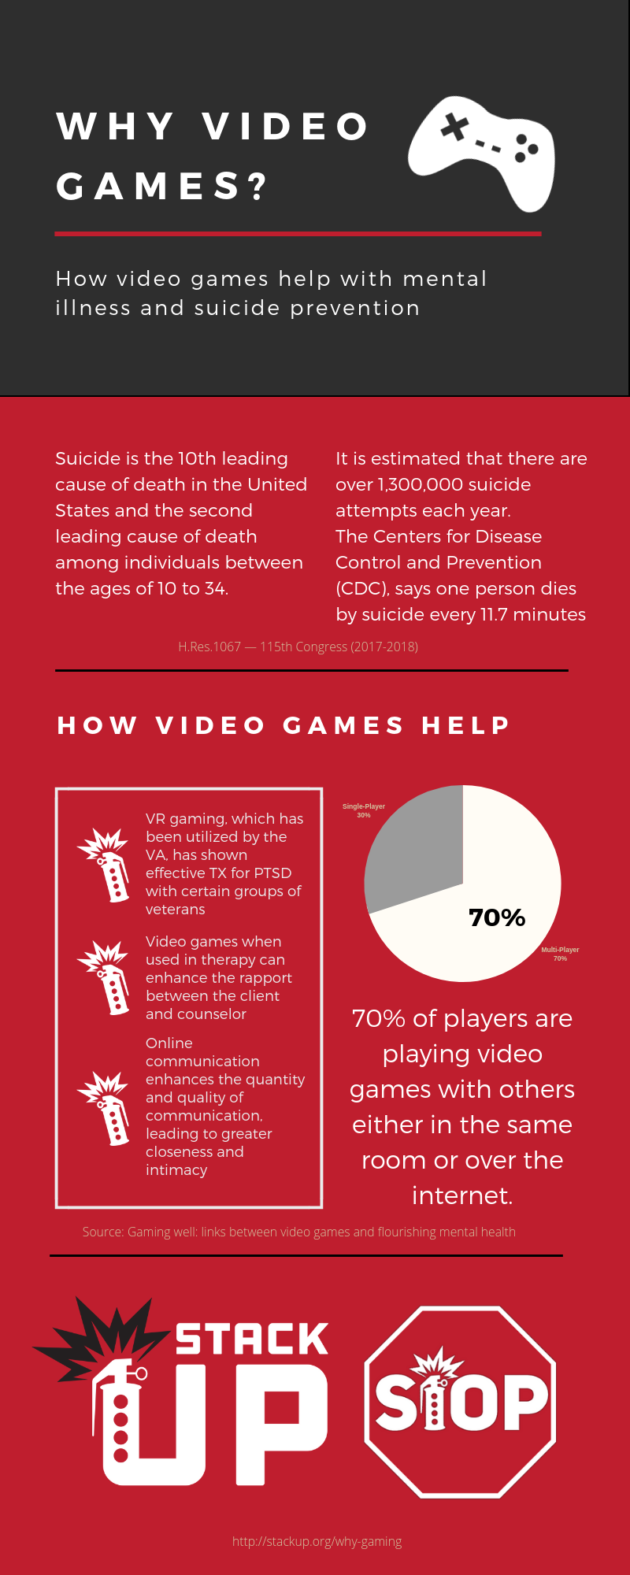 Stack Up uses video games to connect veterans with each